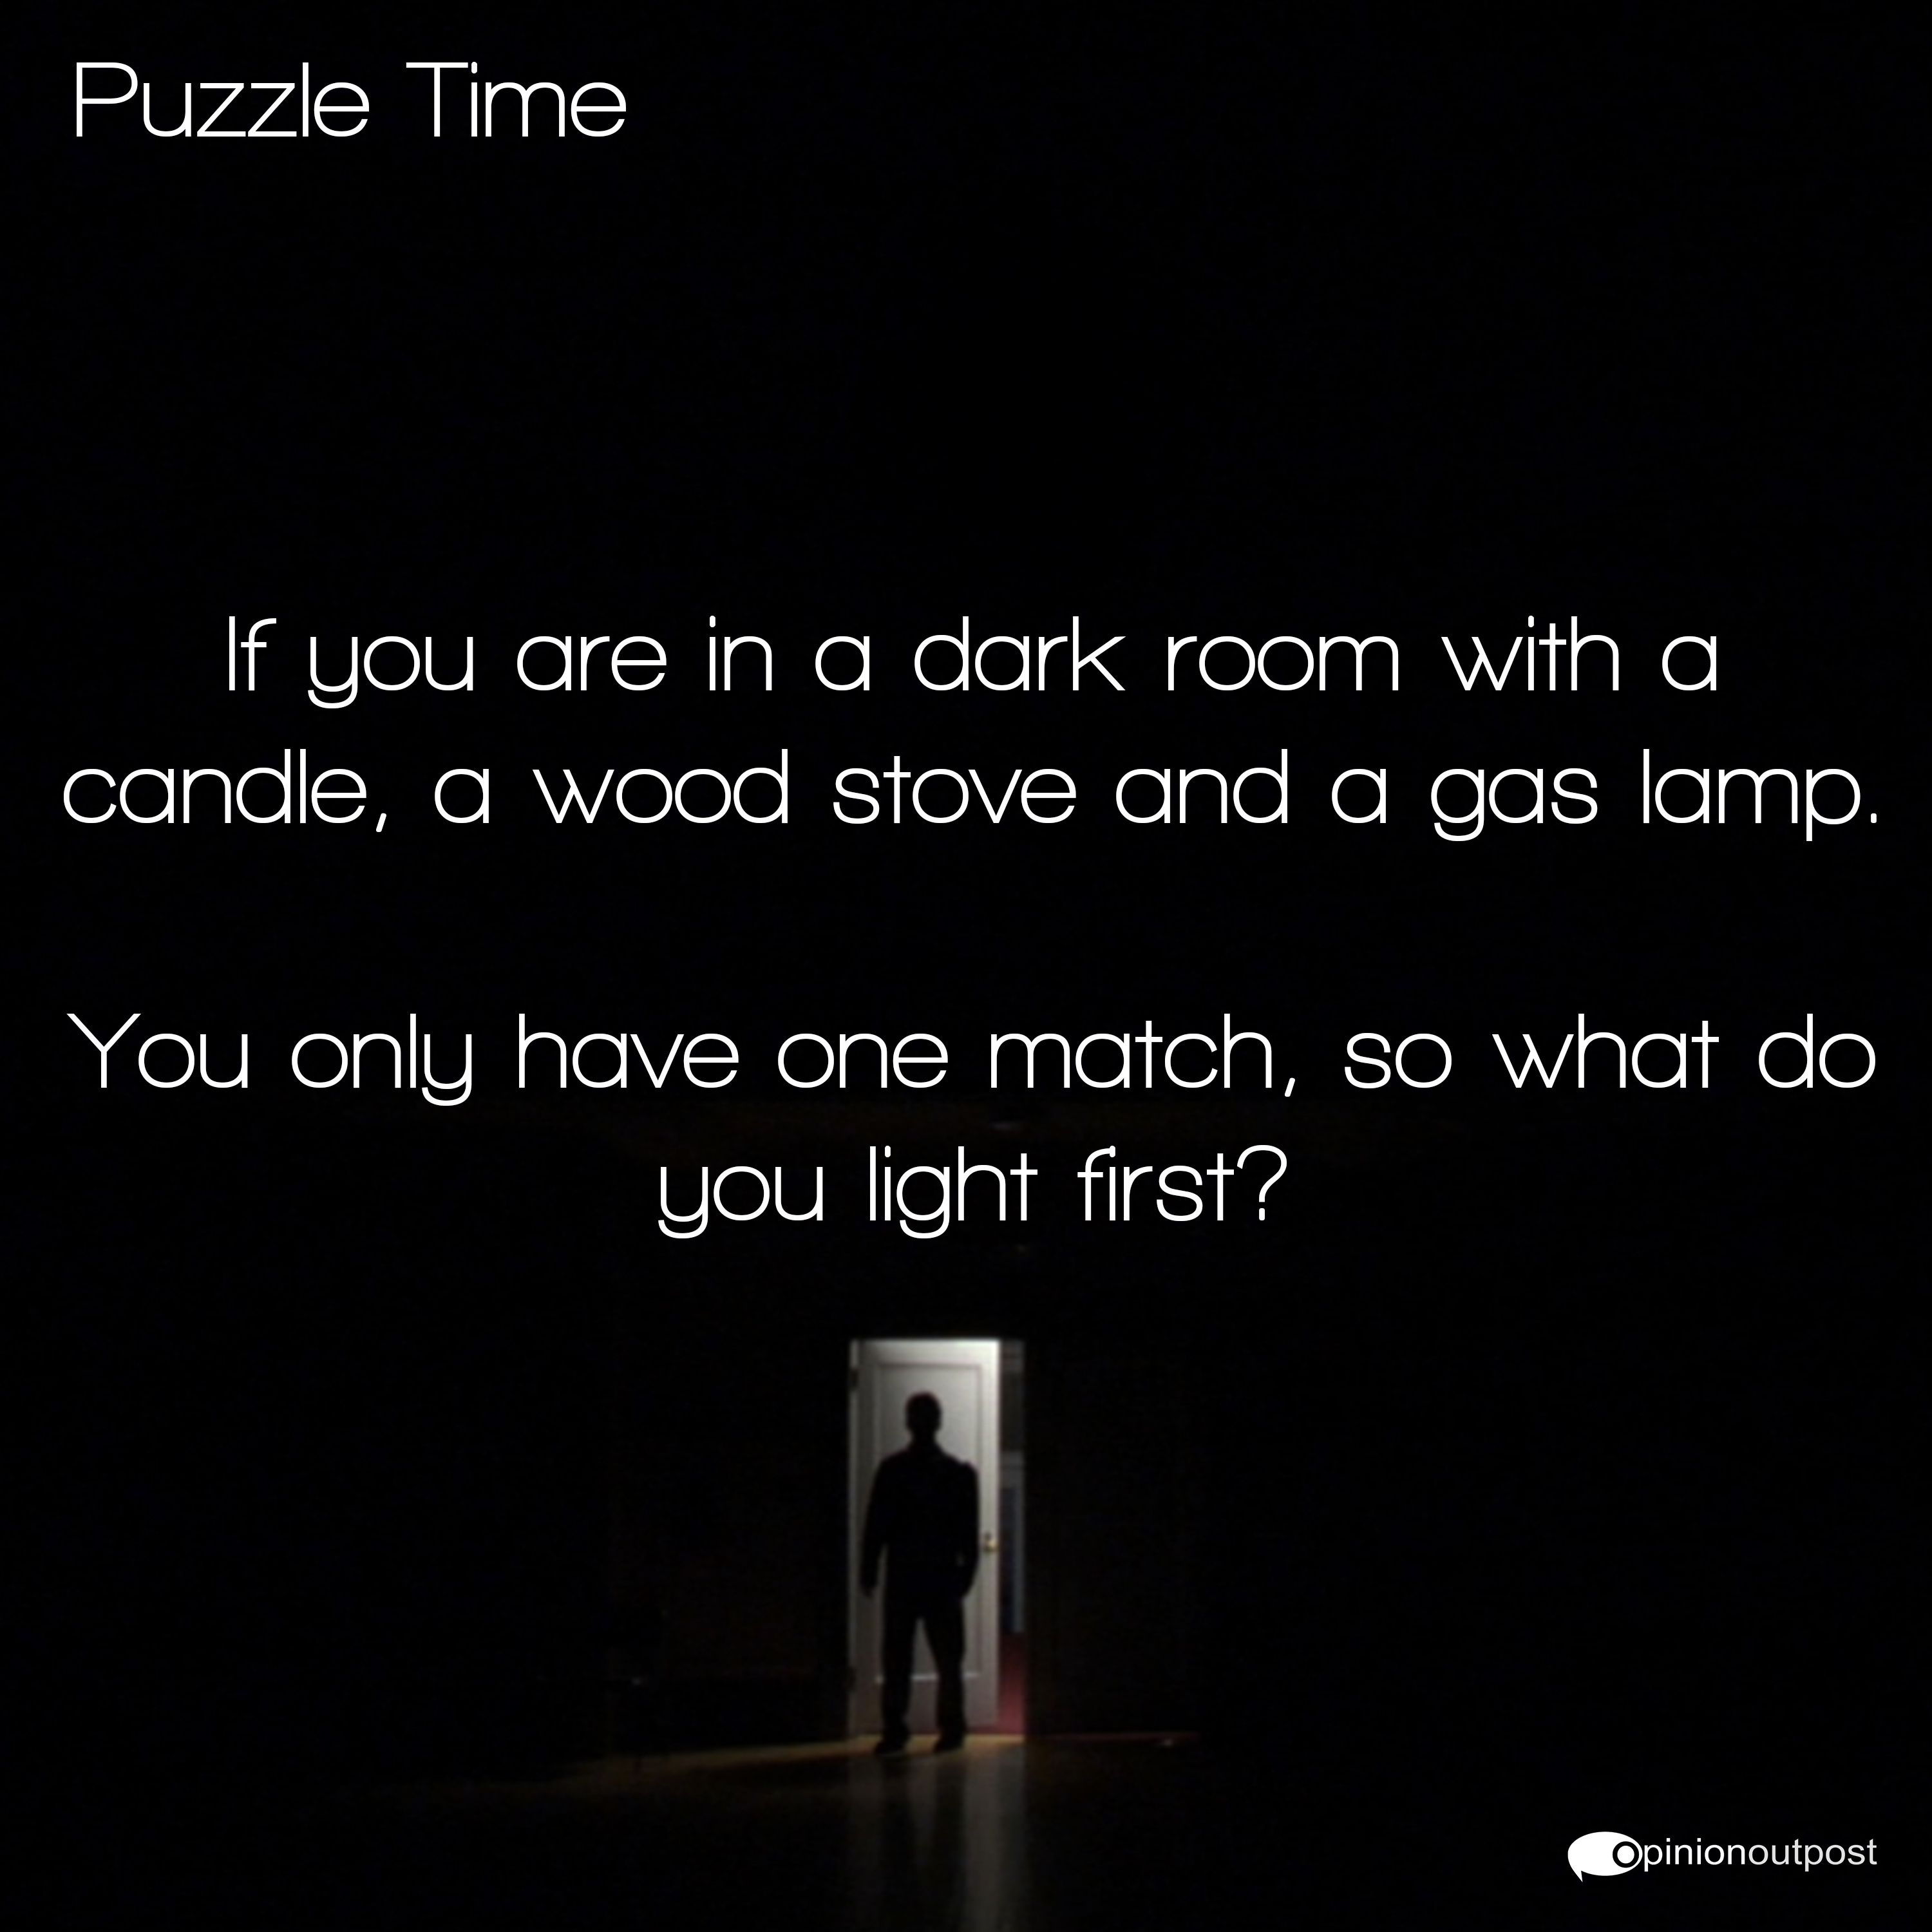 Opinion Outpost members!What is the answer to this puzzle